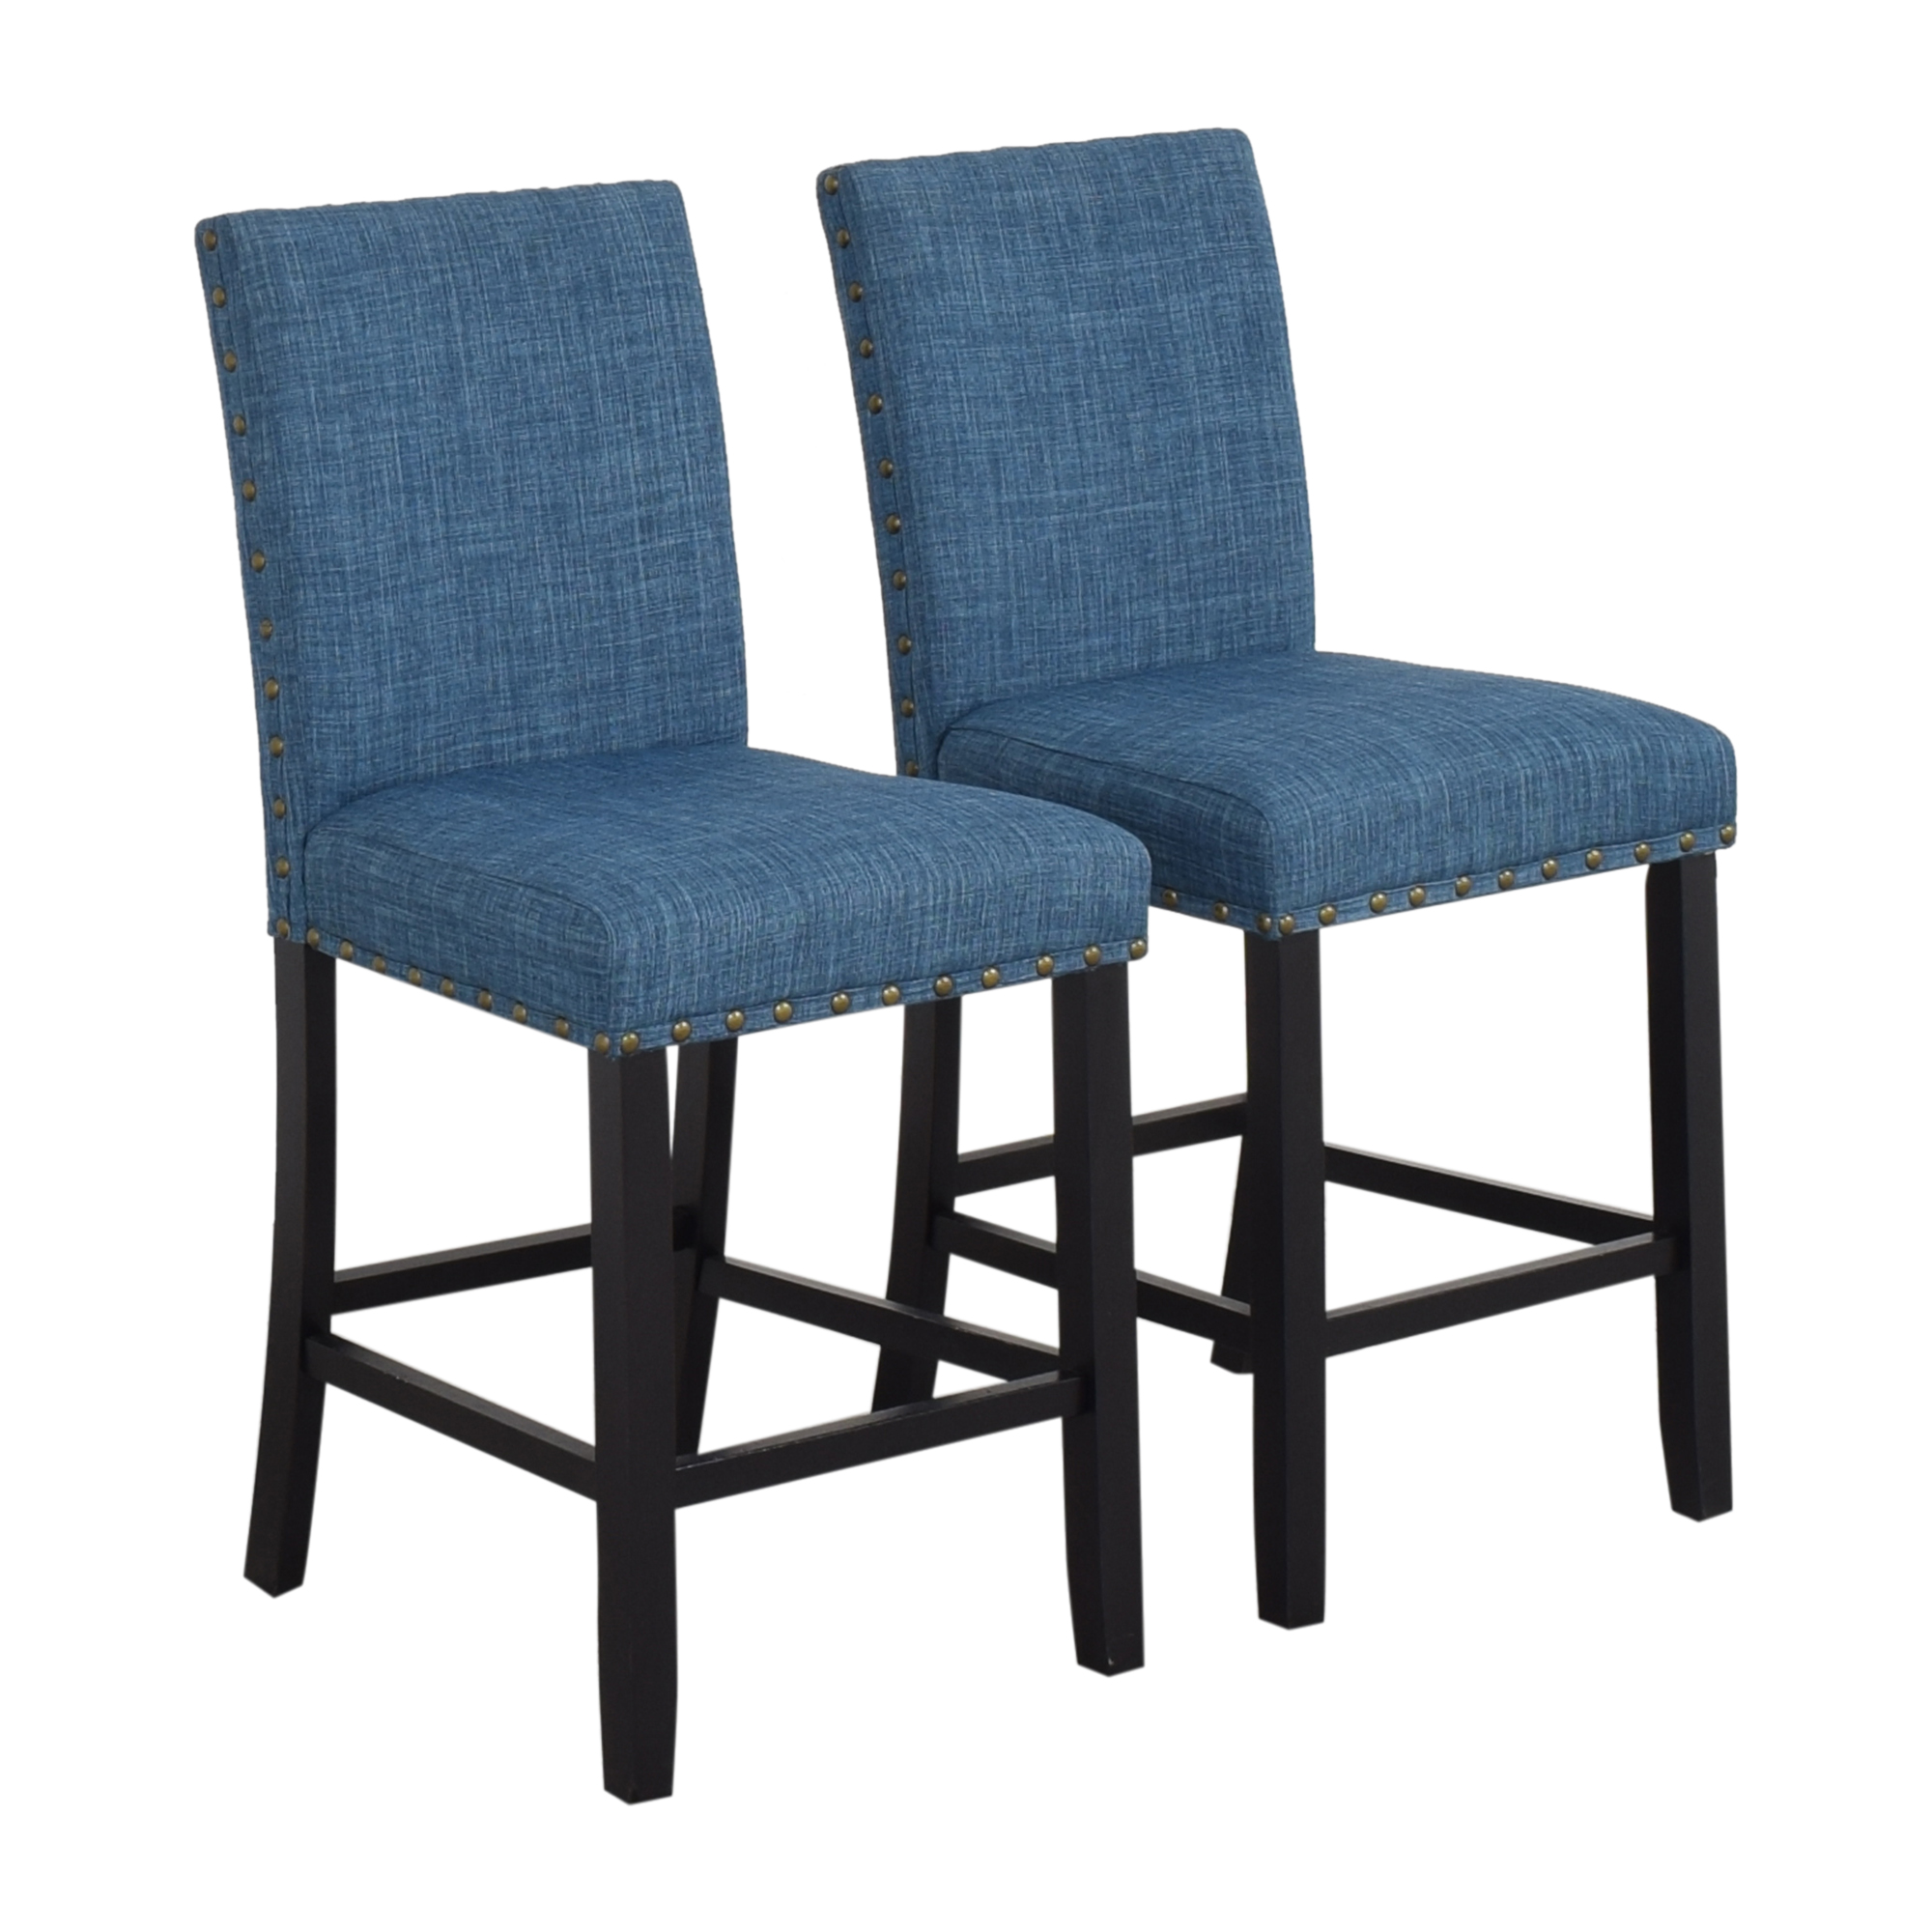 Overstock Overstock Biony Nailhead Counter Stools used